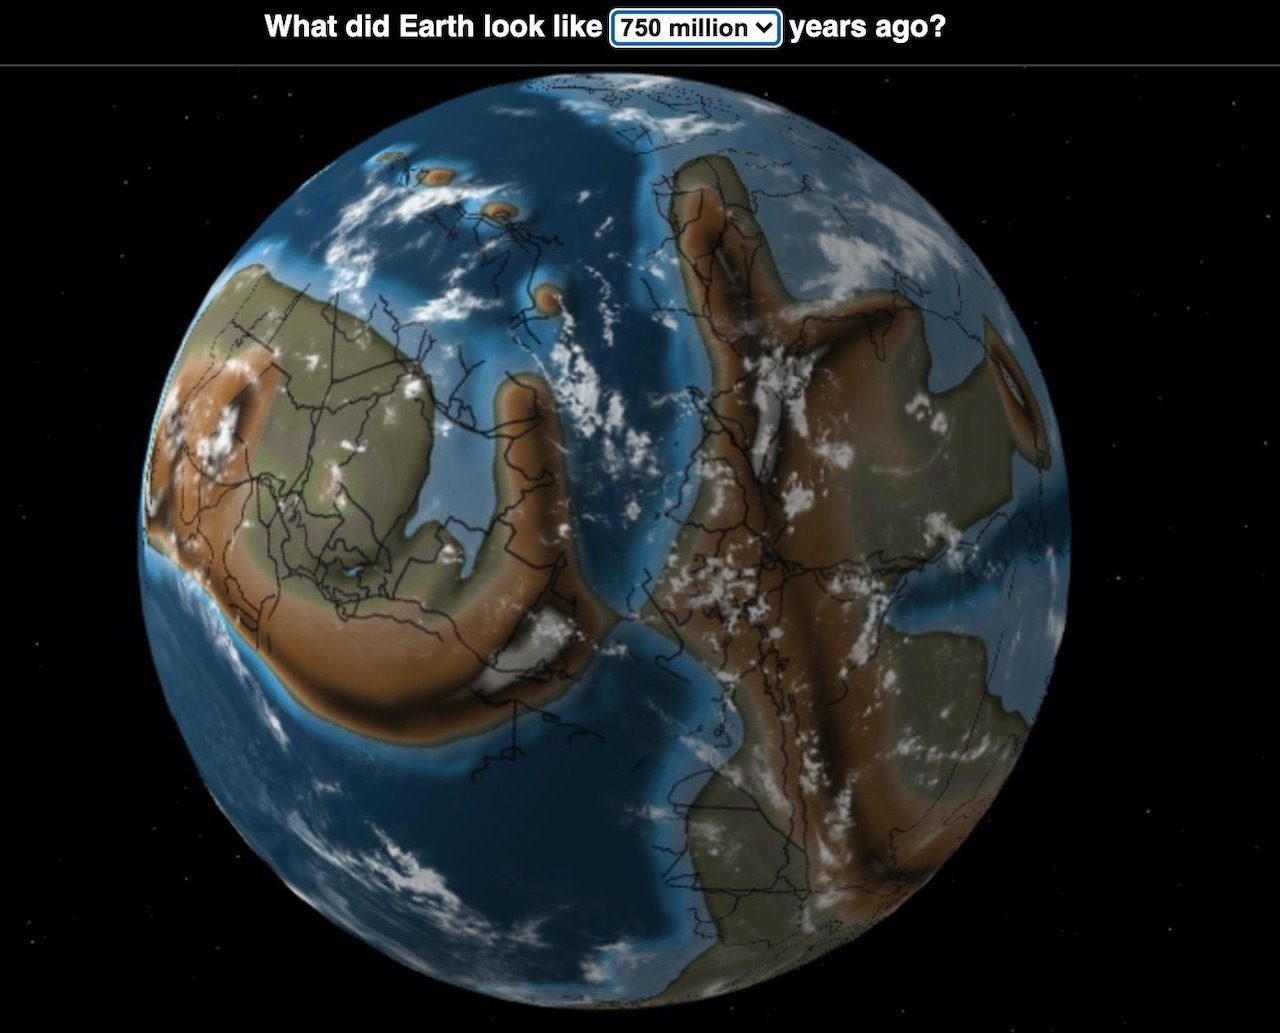 What did Earth look like 750 million years ago